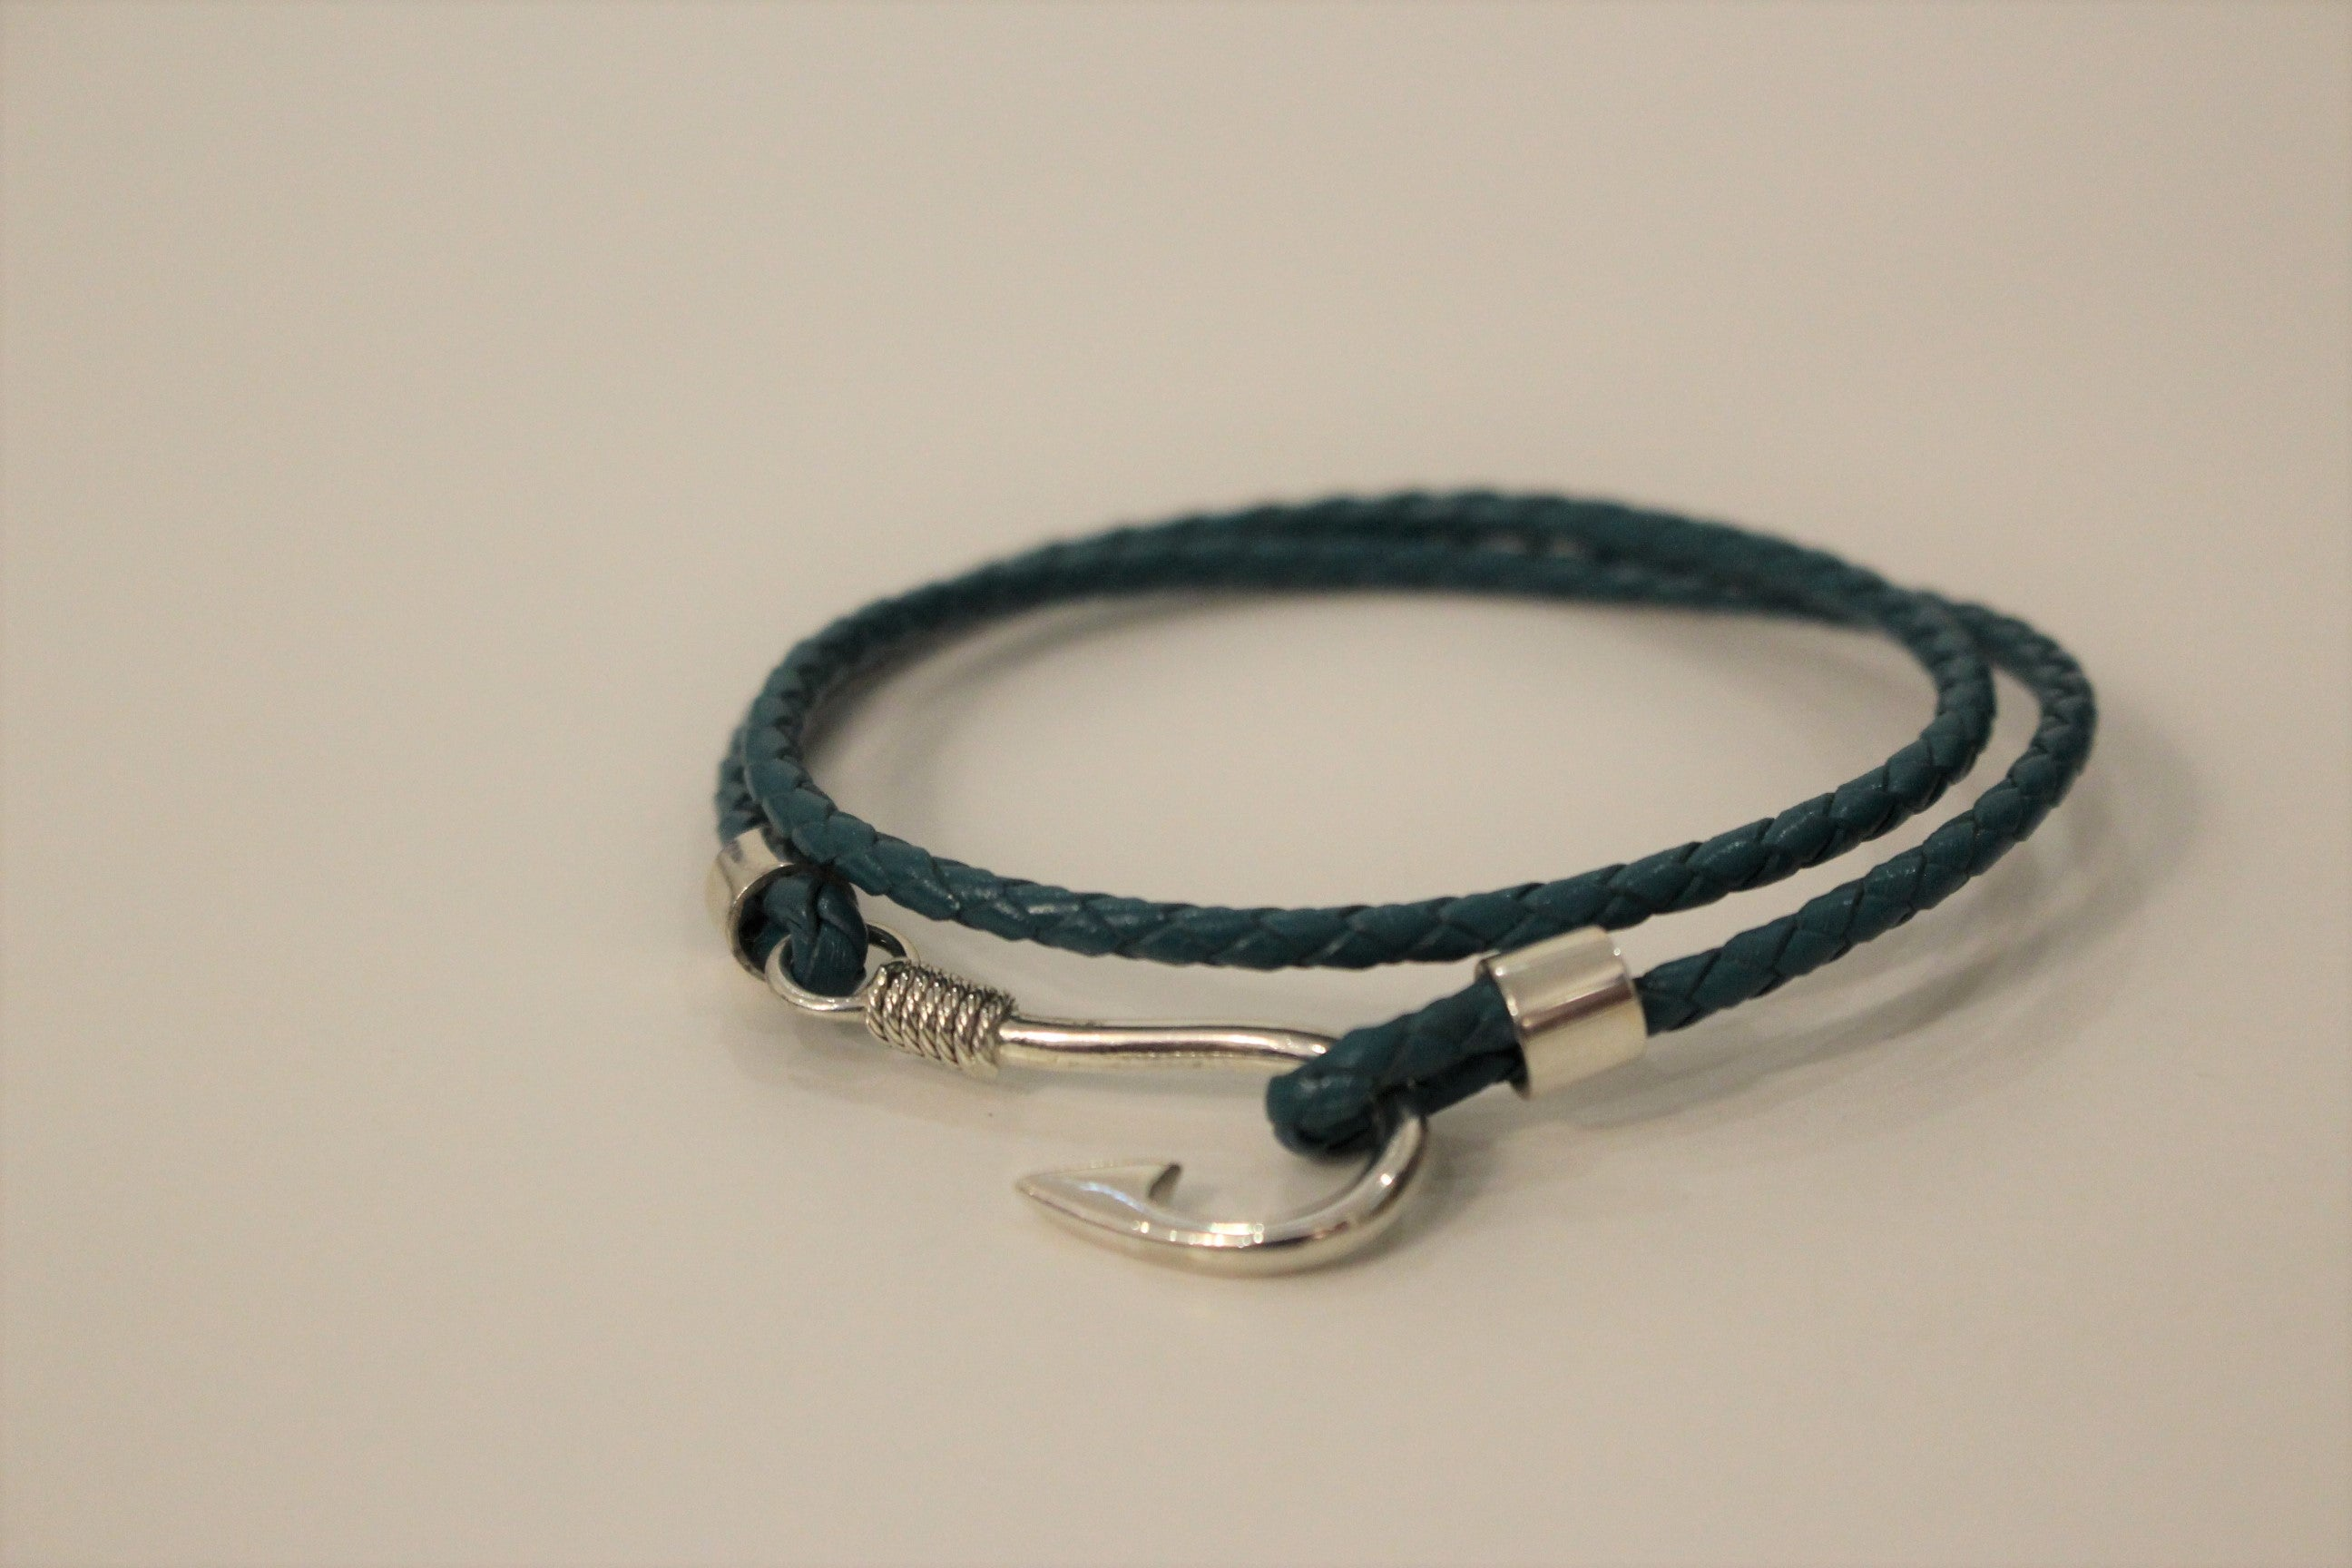 Teal Leather and Hook Bracelet